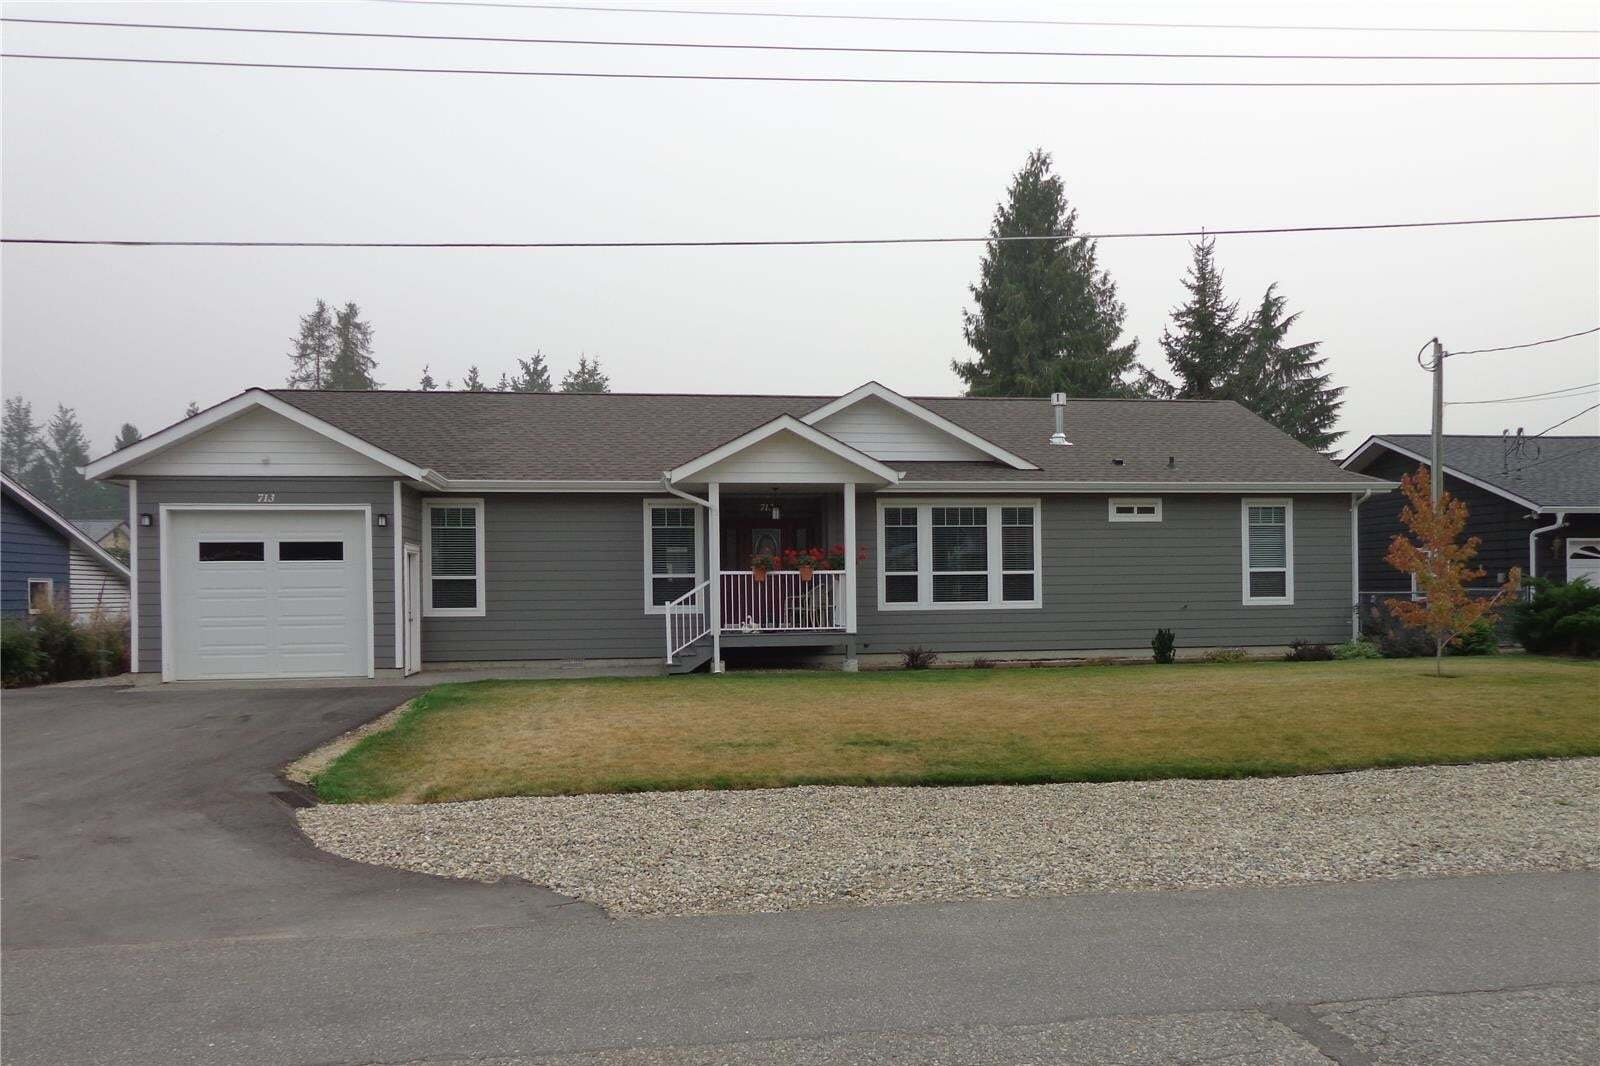 House for sale at 713 Cedar St Sicamous British Columbia - MLS: 10215443